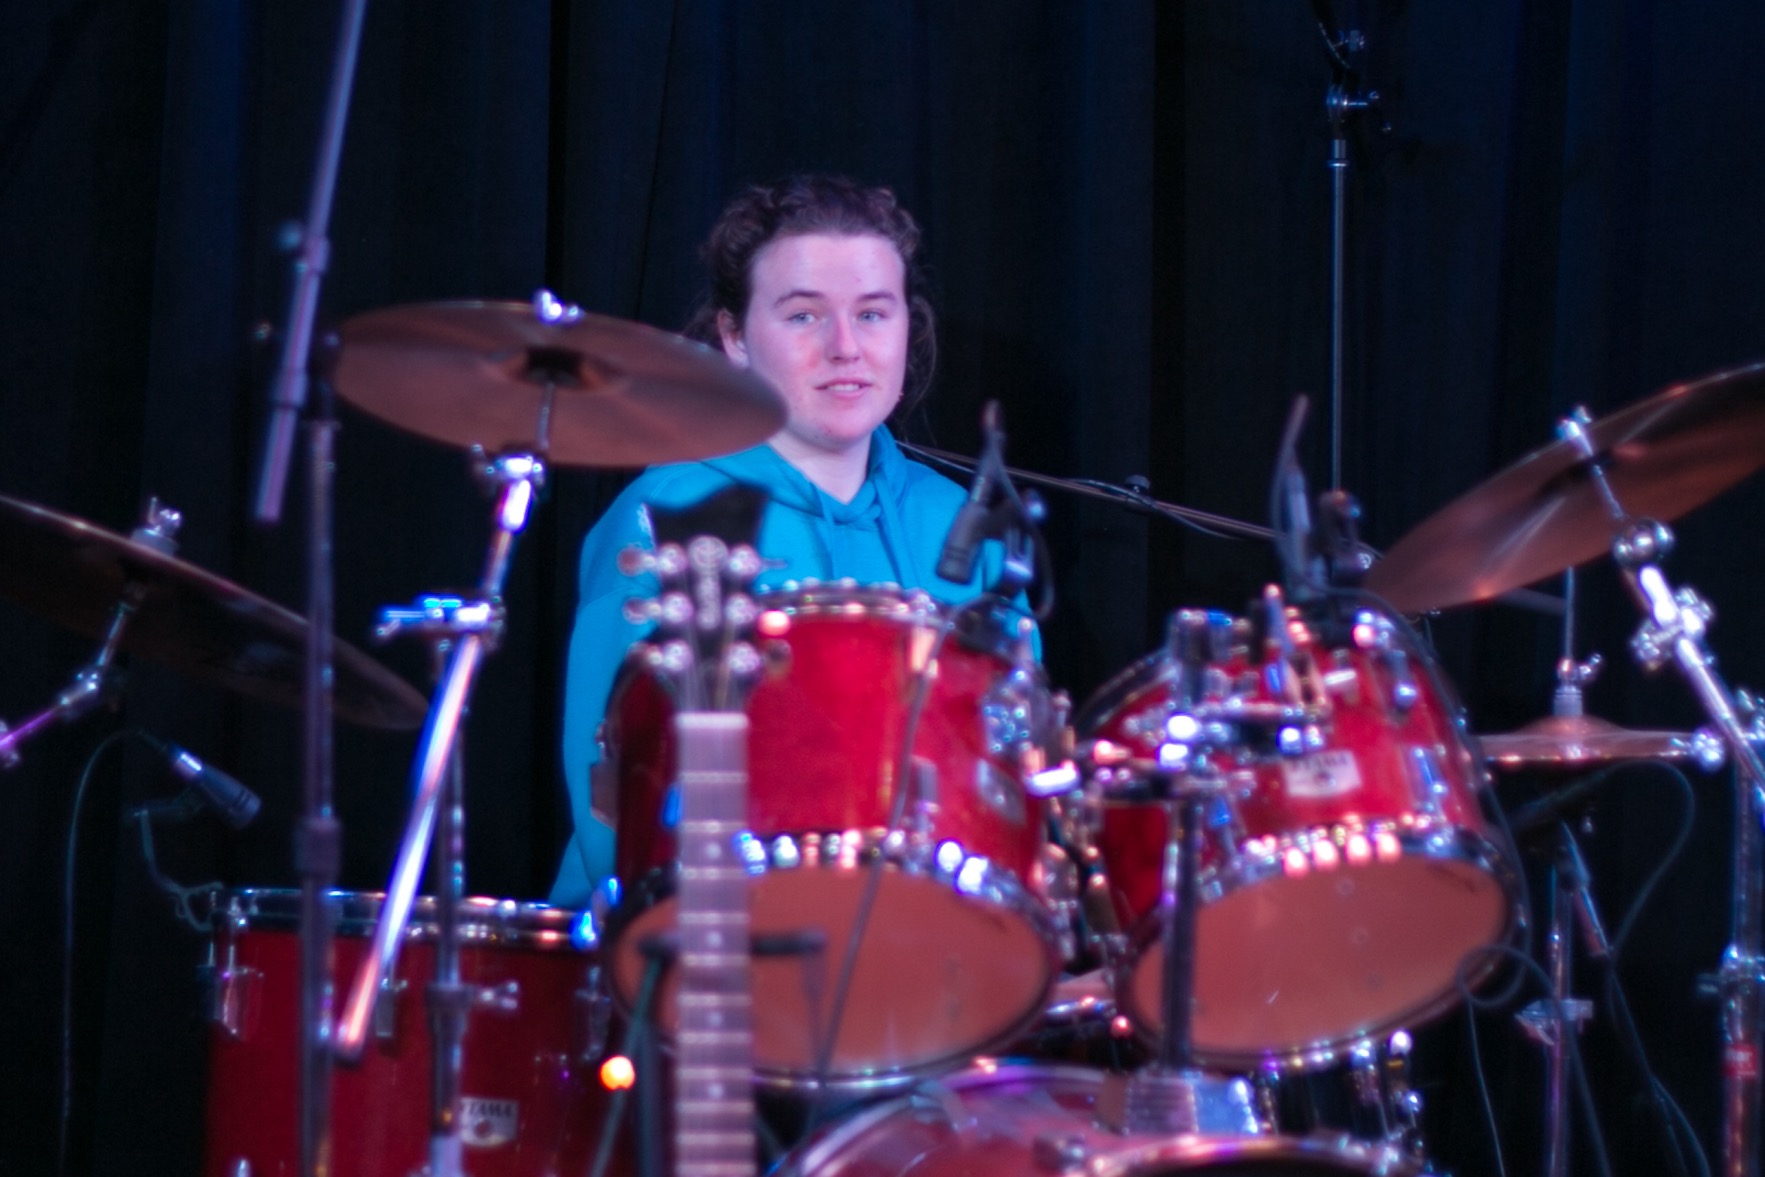 Malena on drums 12.6.15